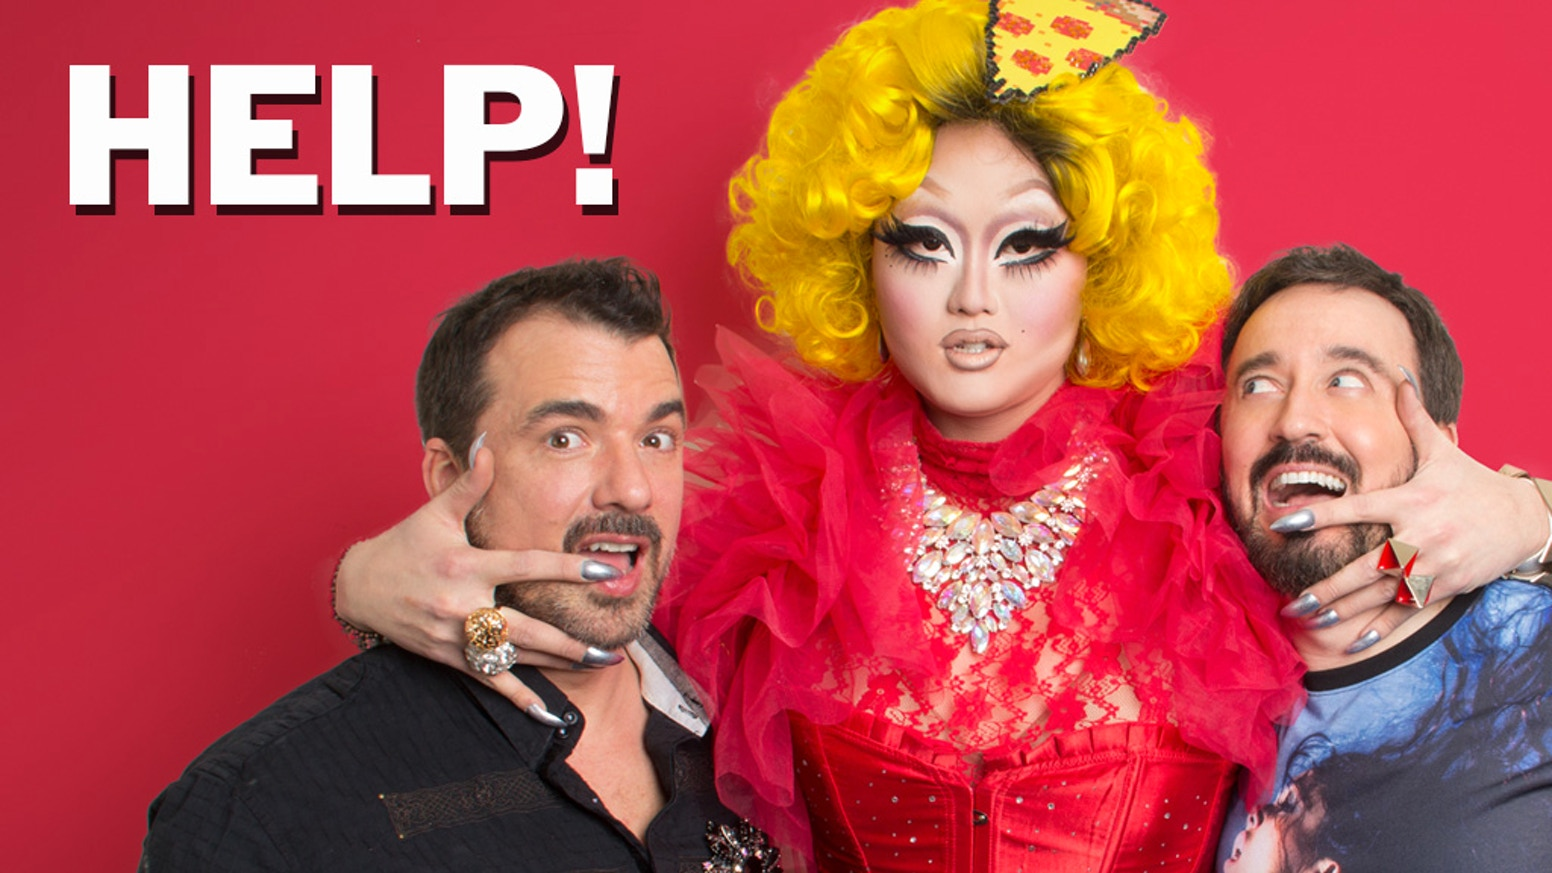 Pledge $1 & follow around your favorite drag queens & meet some sizzling new gals in this delicious new cooking show.